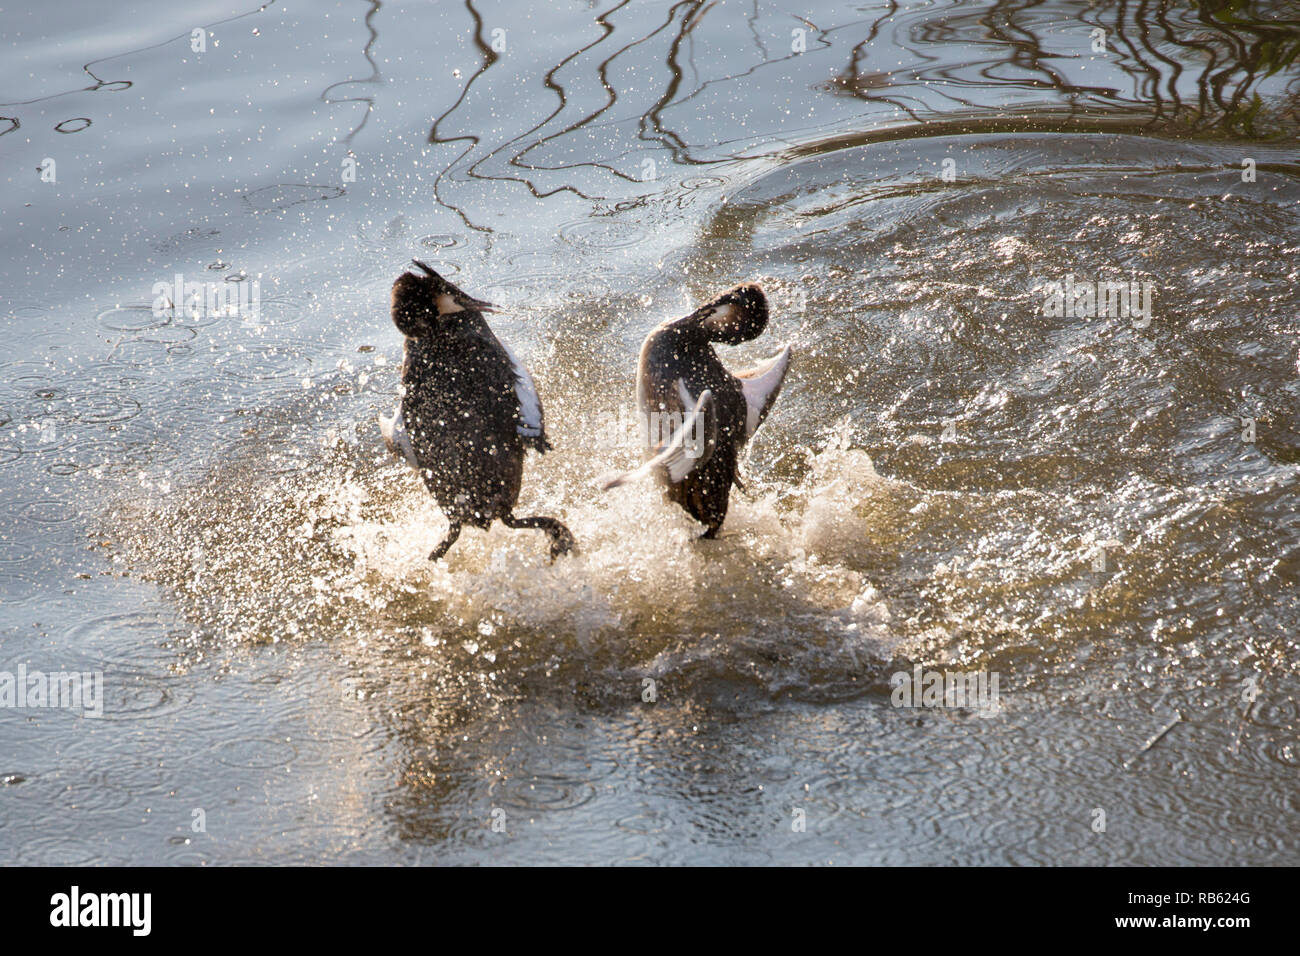 Great crested grebes (Podiceps cristatus) fighting in Het IJ river. Amsterdam, The Netherlands. - Stock Image